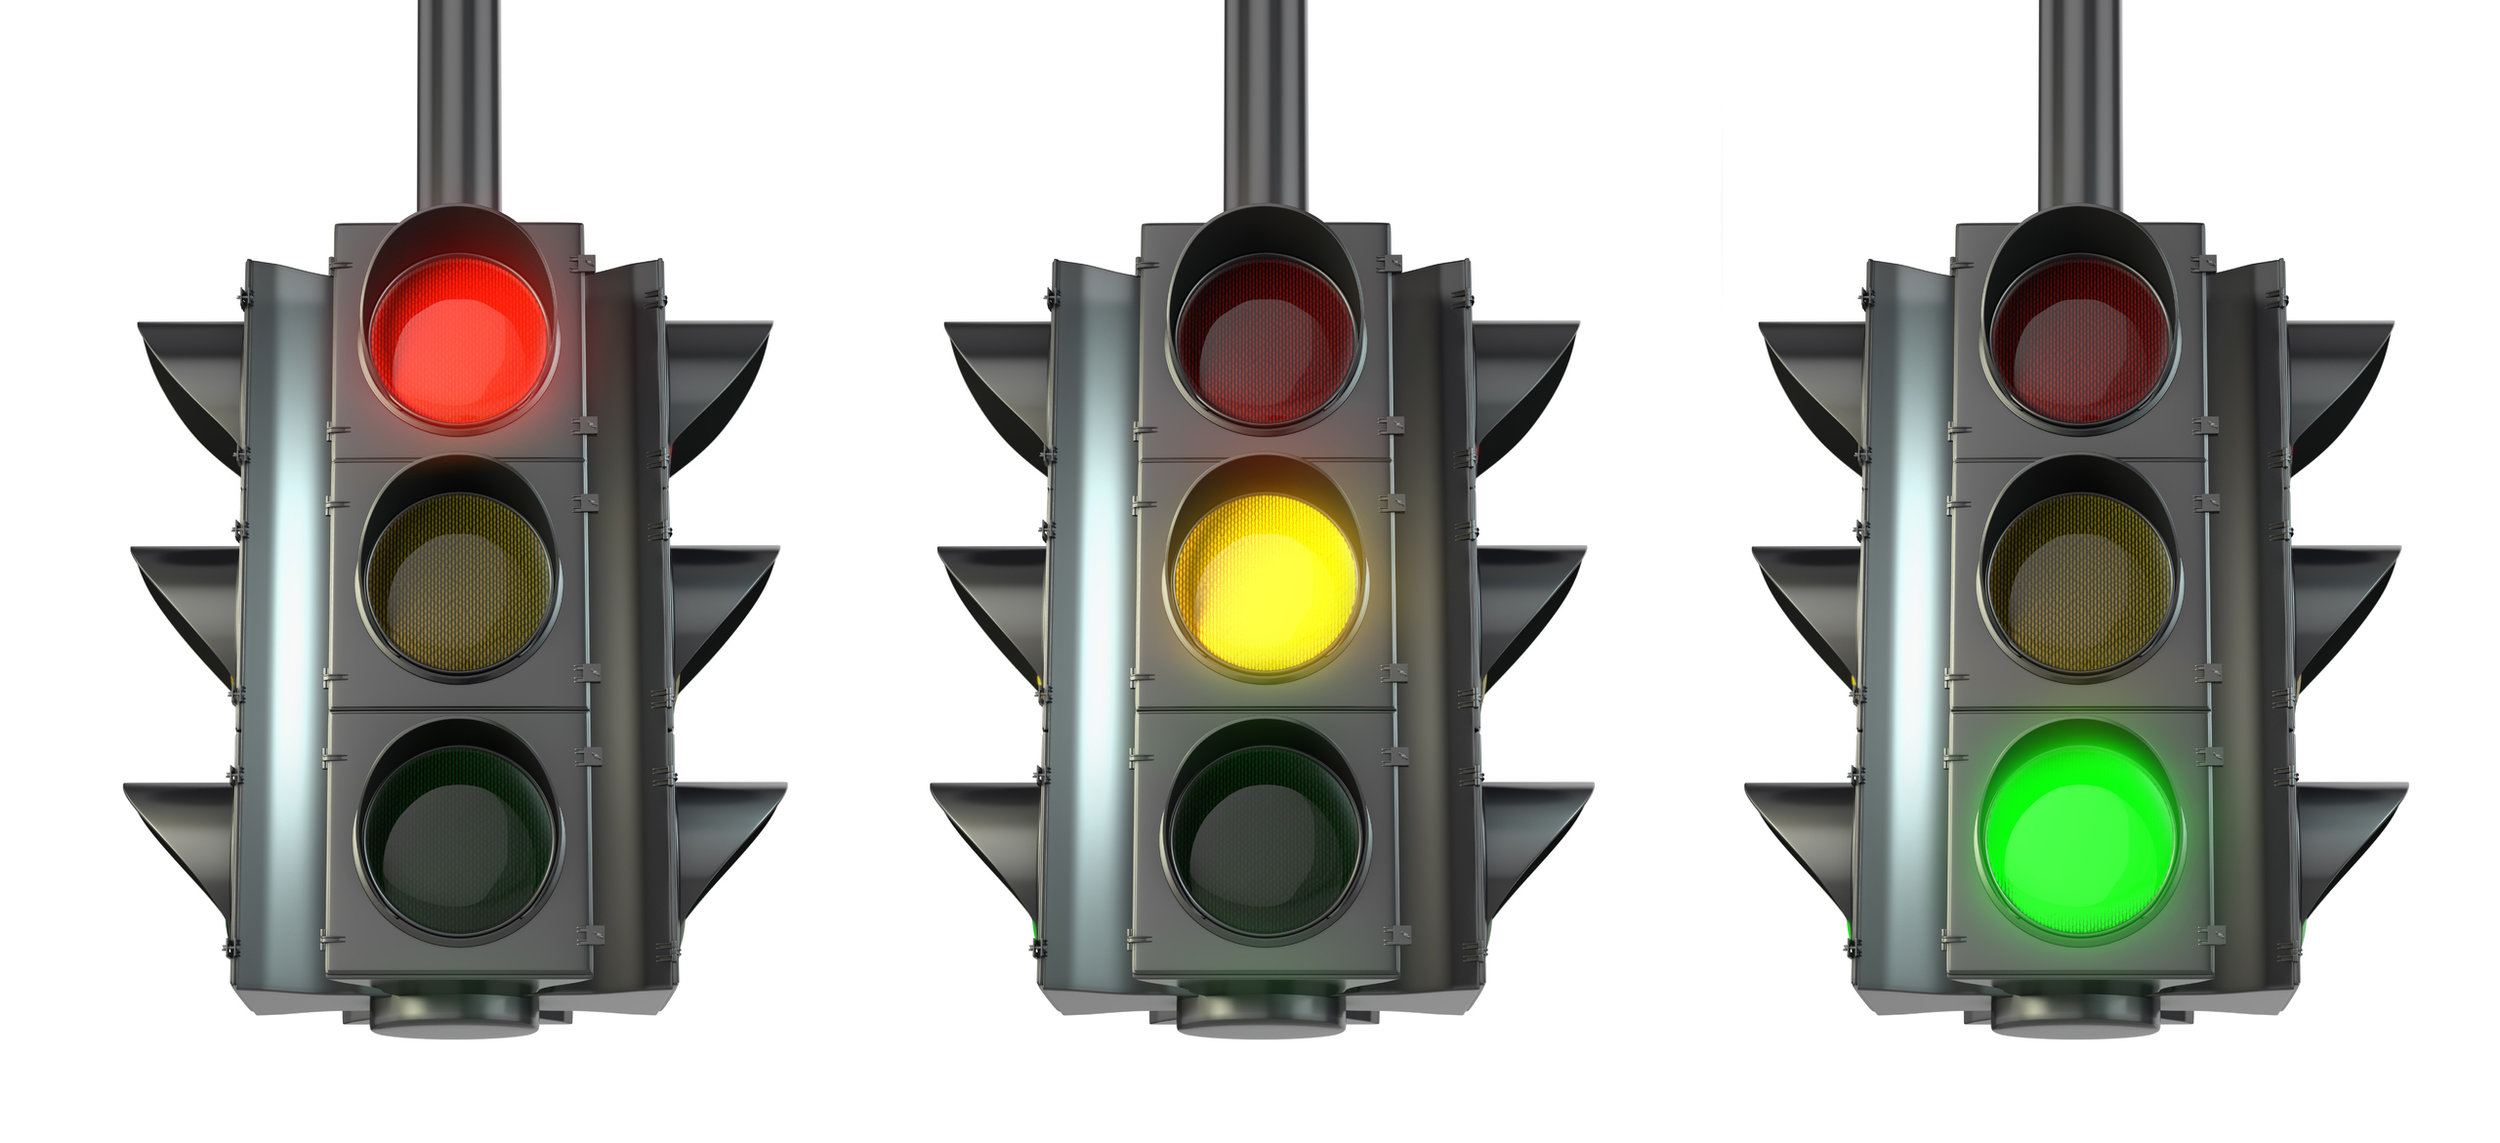 The Traffic Light Health Guide